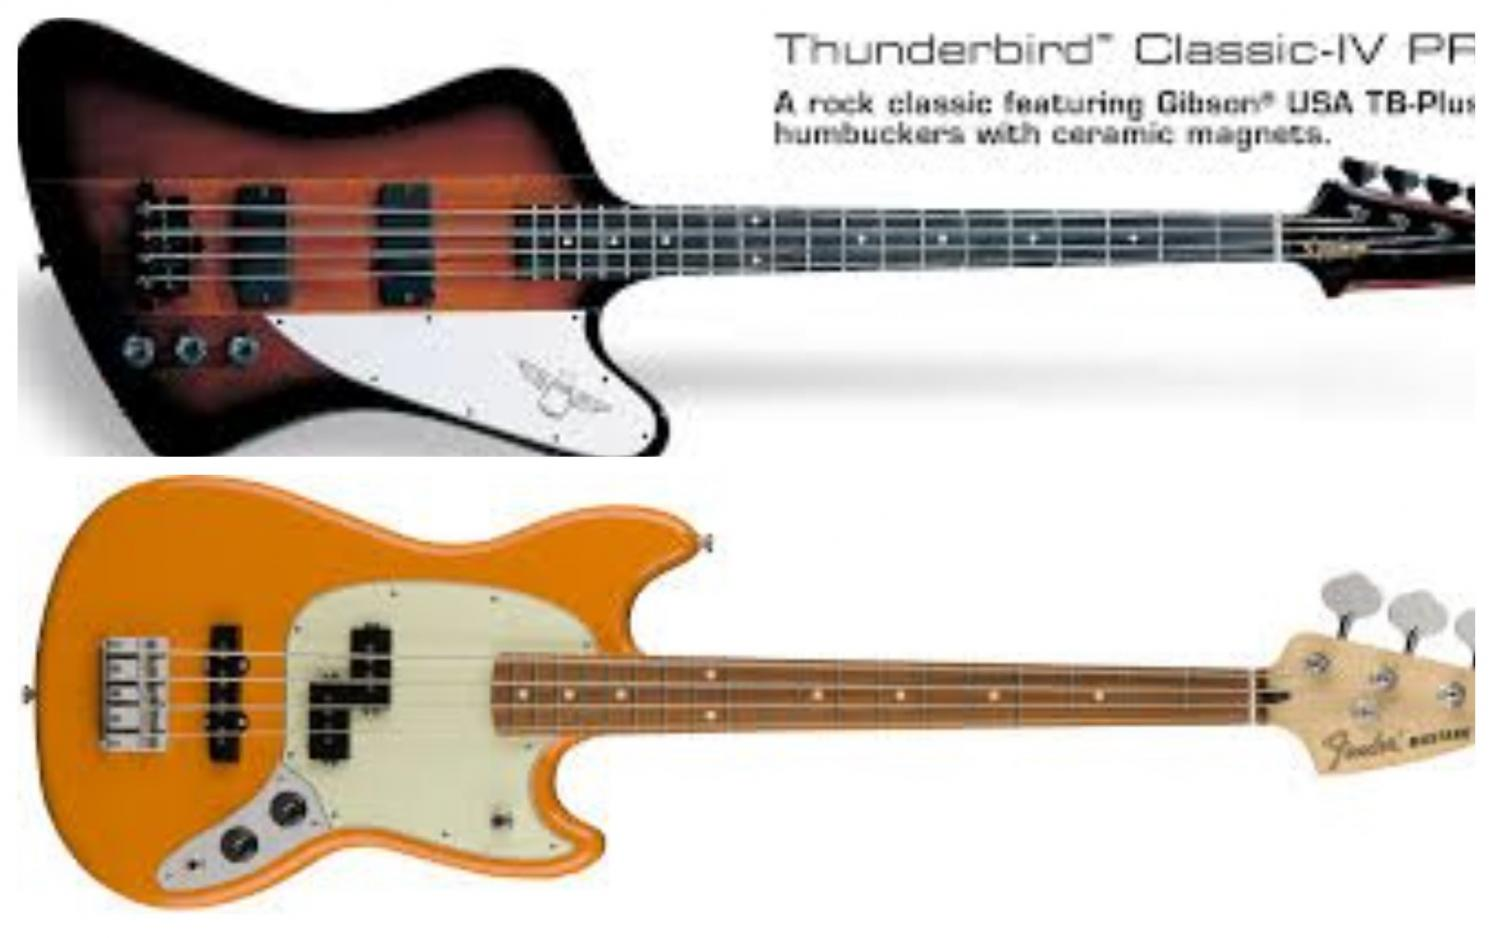 The Thunderbird Classic IV Pro (Top) and the Fender (Bottom)